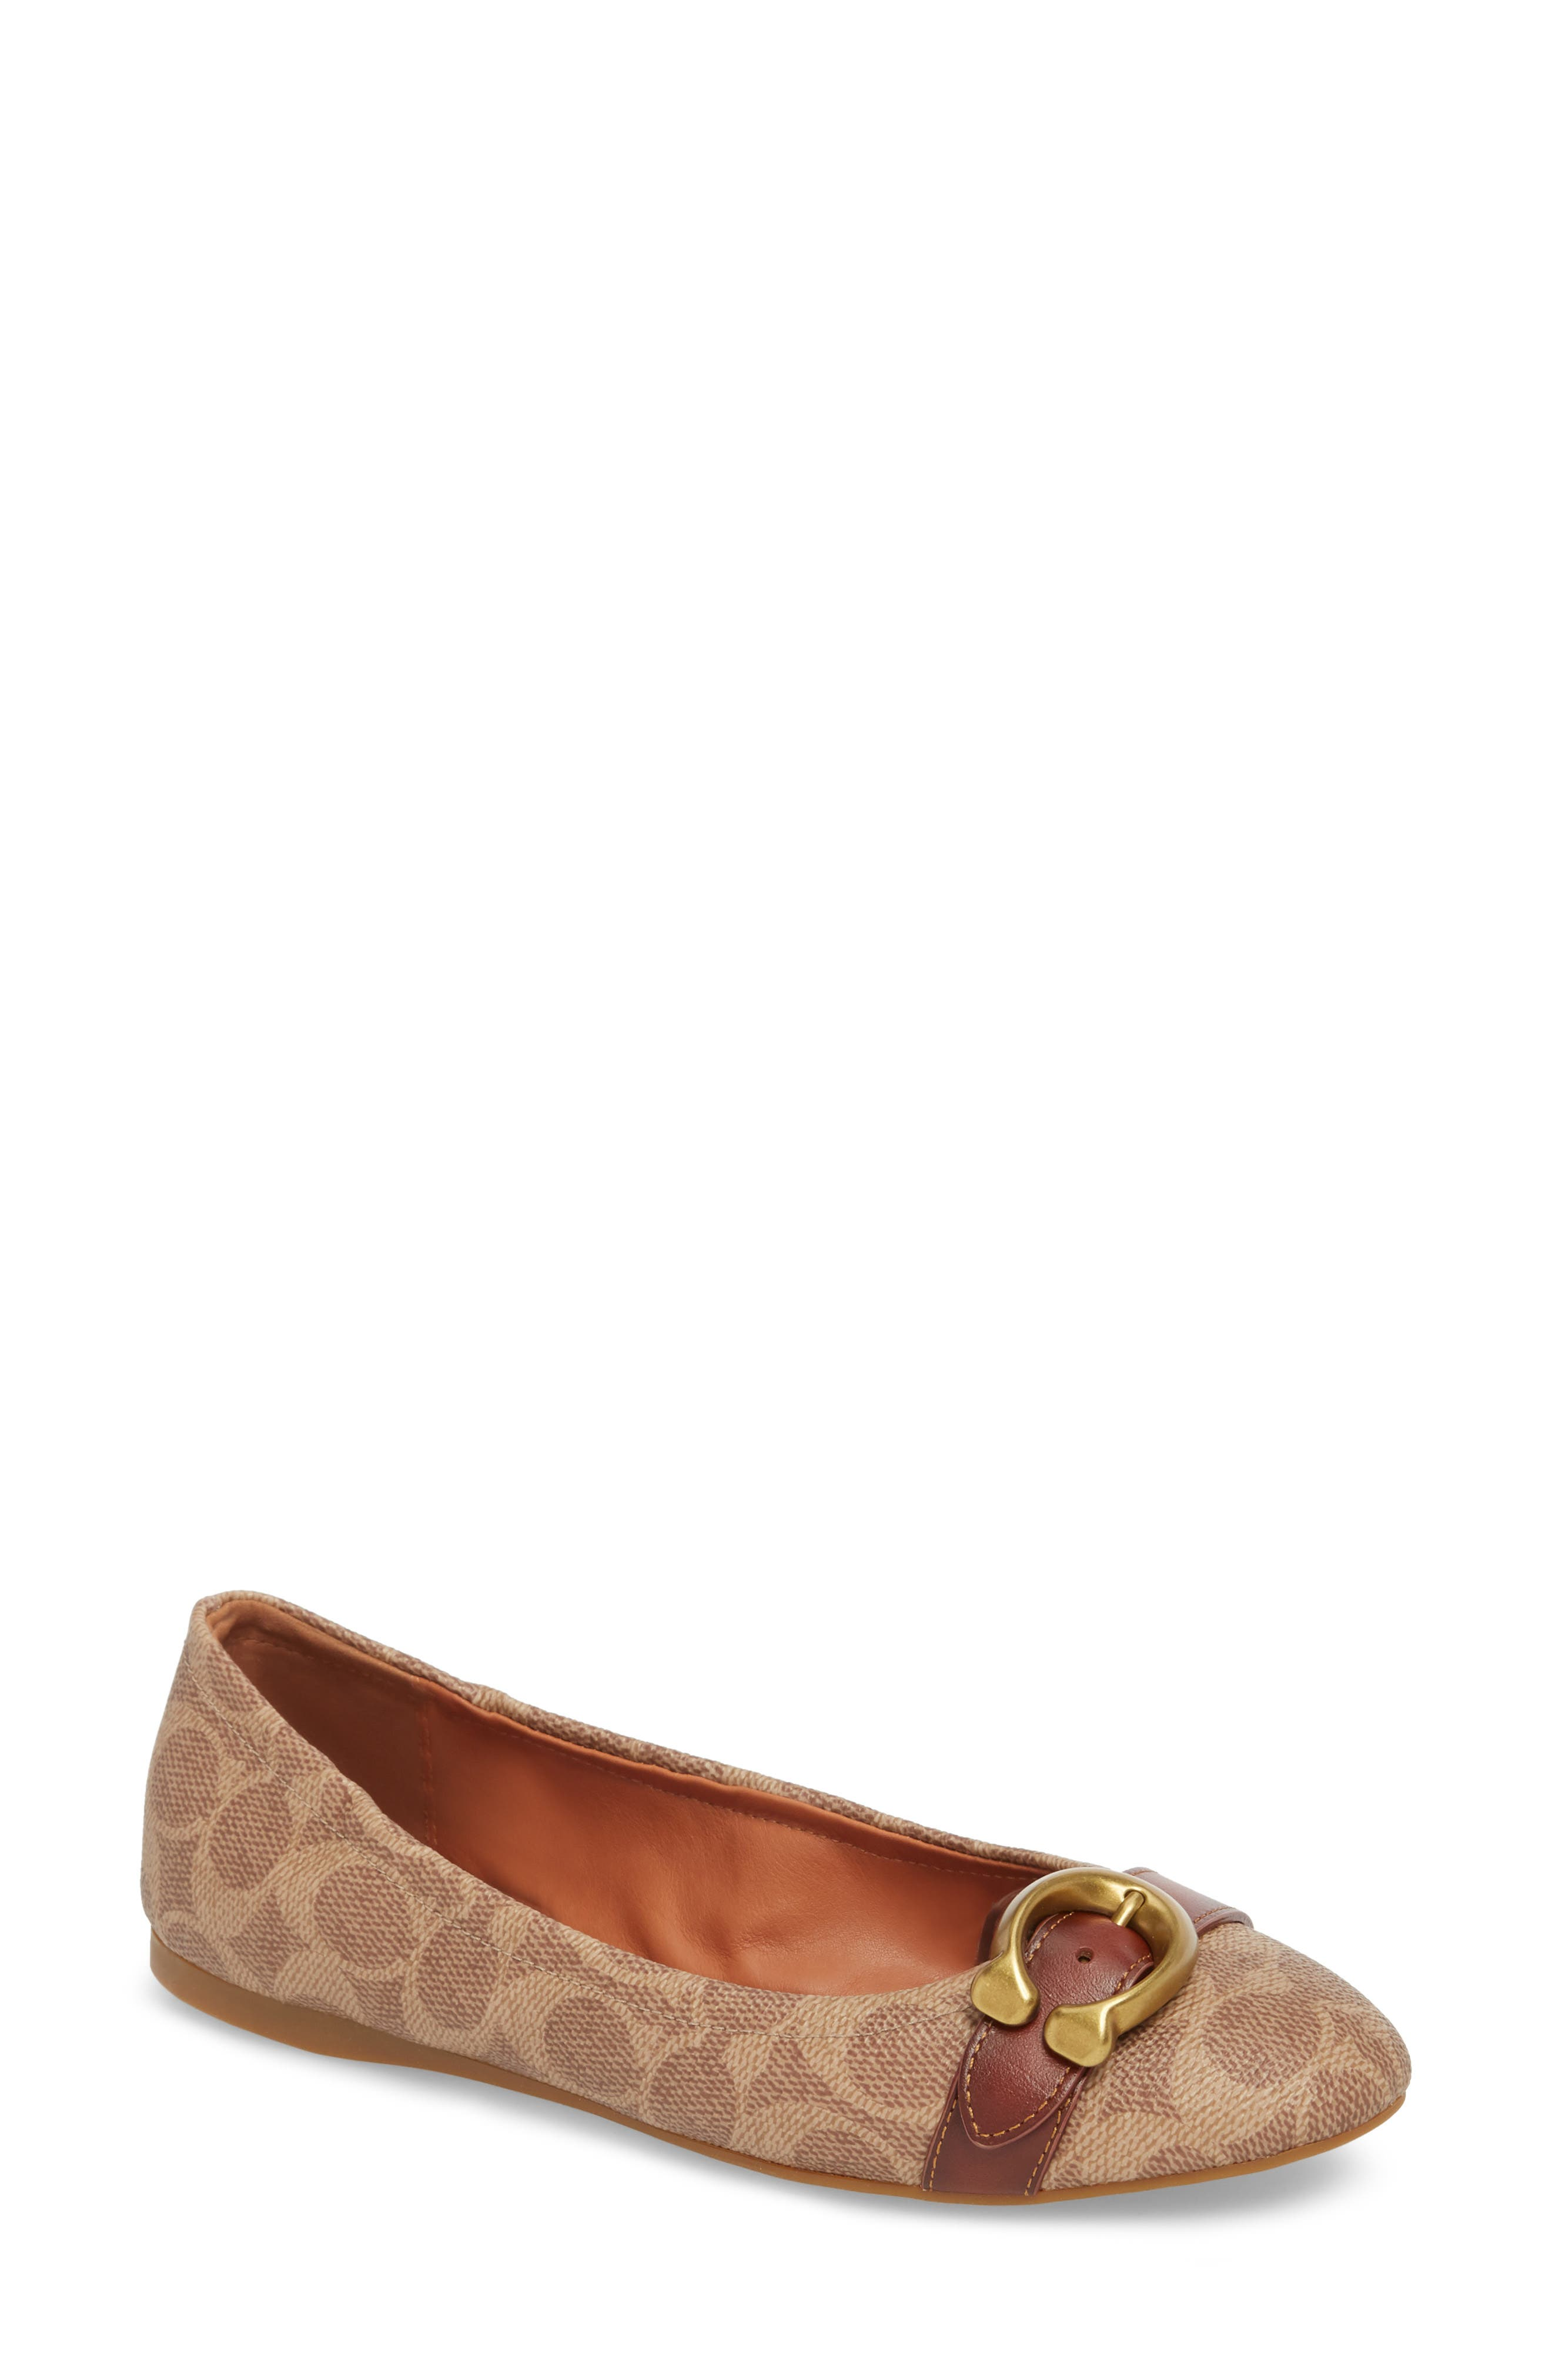 COACH Stanton Buckle Flat, Main, color, BROWN LEATHER